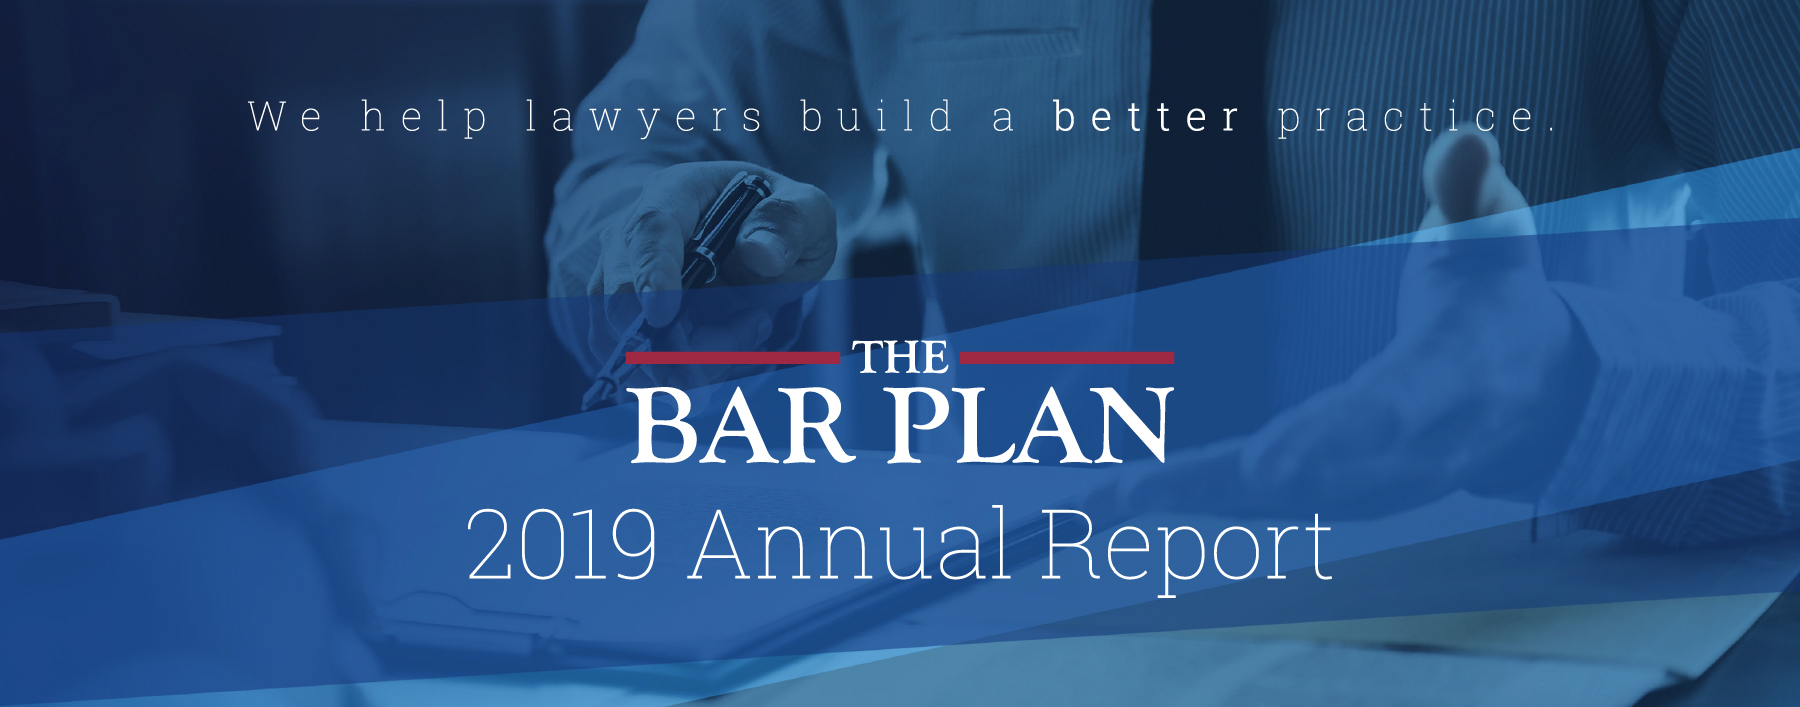 2019-Annual-Report-top-banner